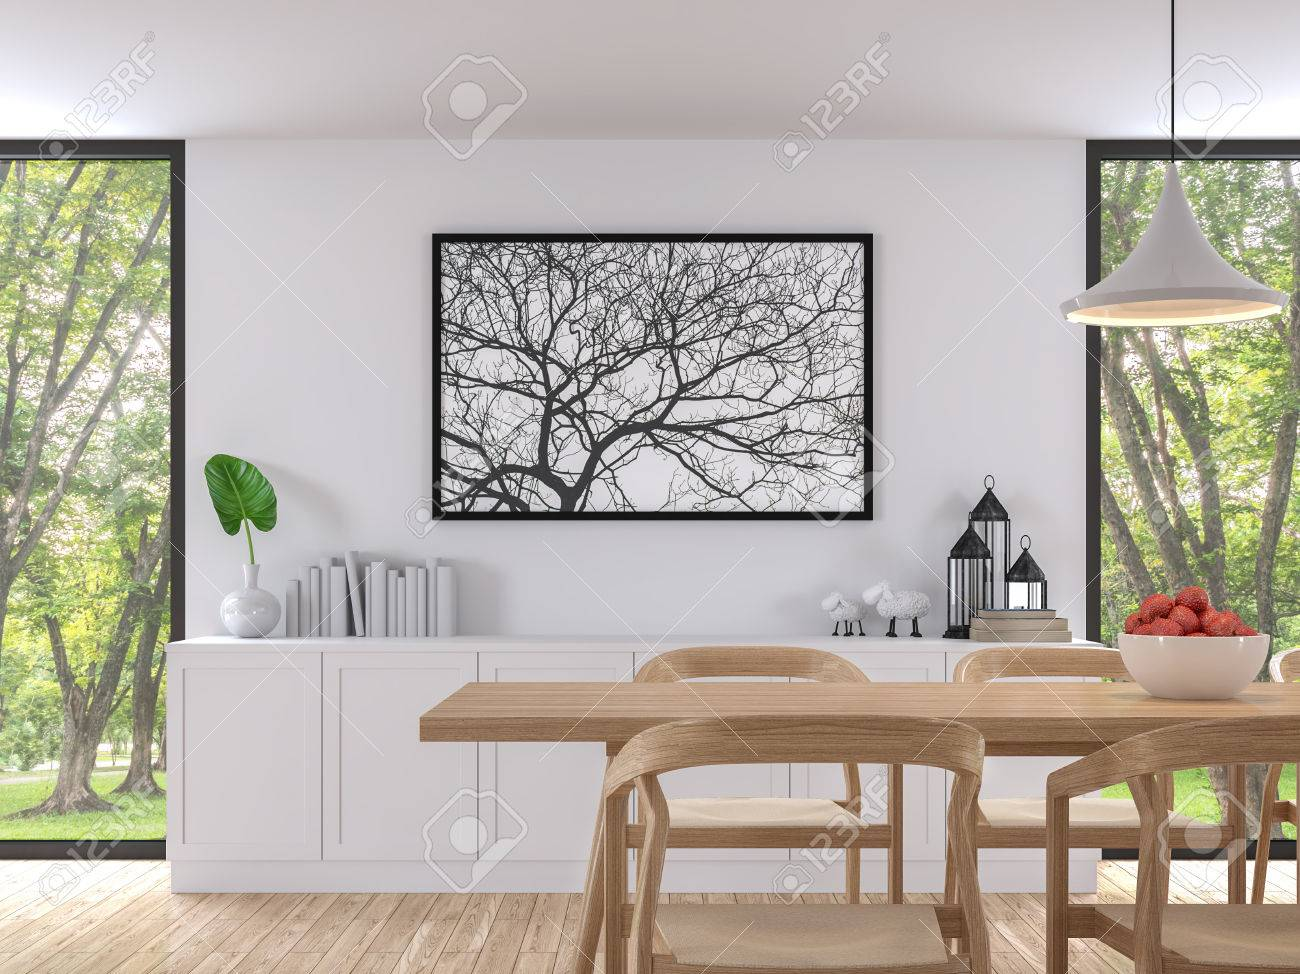 Modern white dining room 3d render image. There are wooden floor..